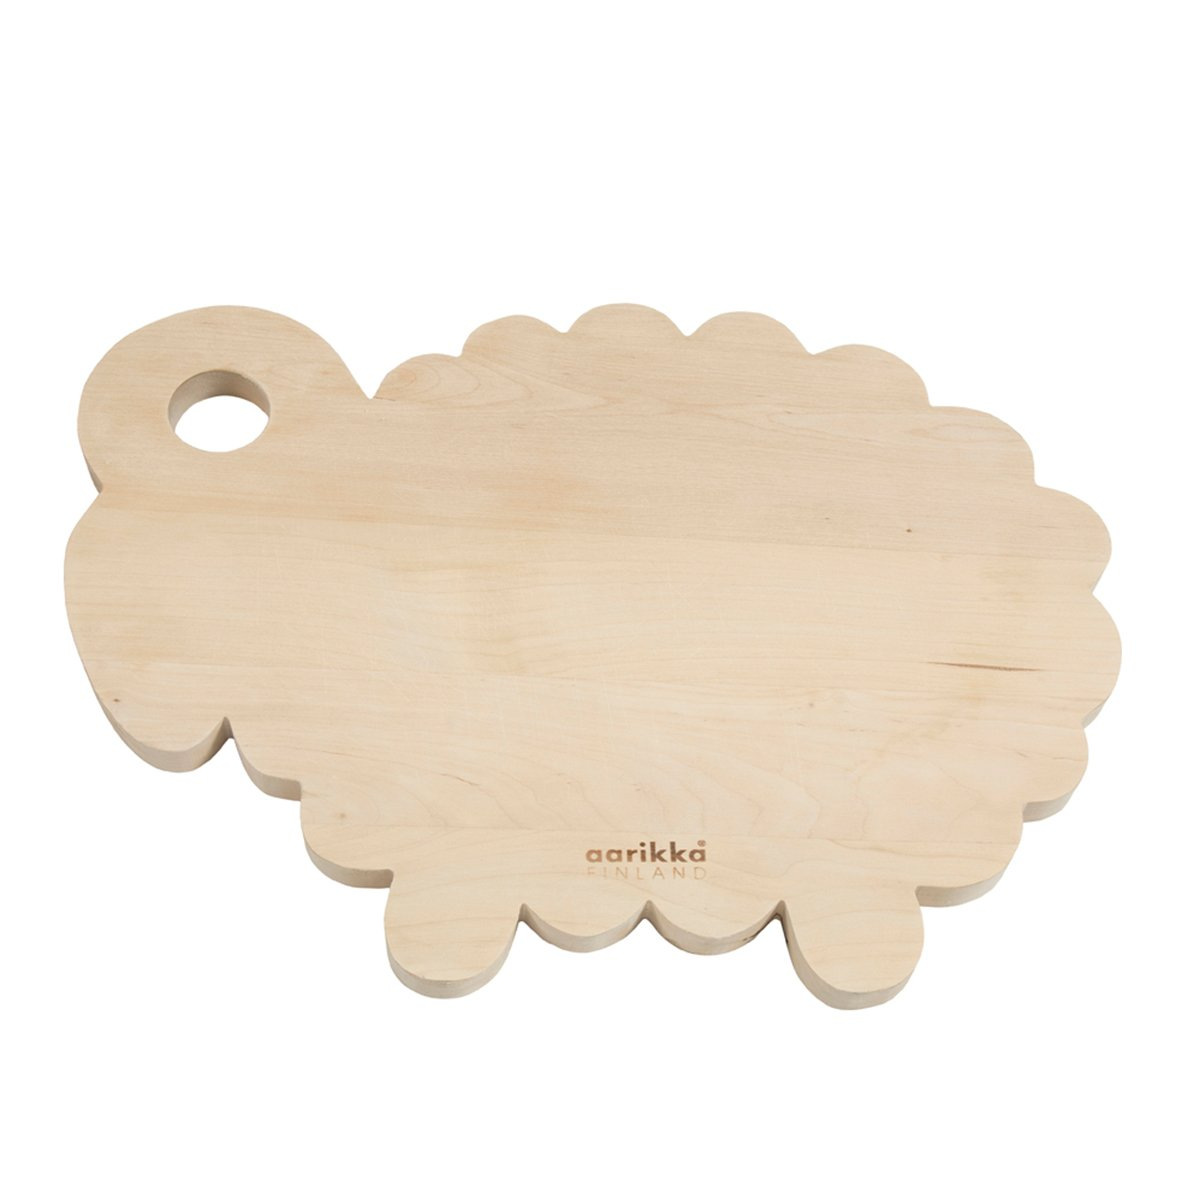 Pässi cutting board big